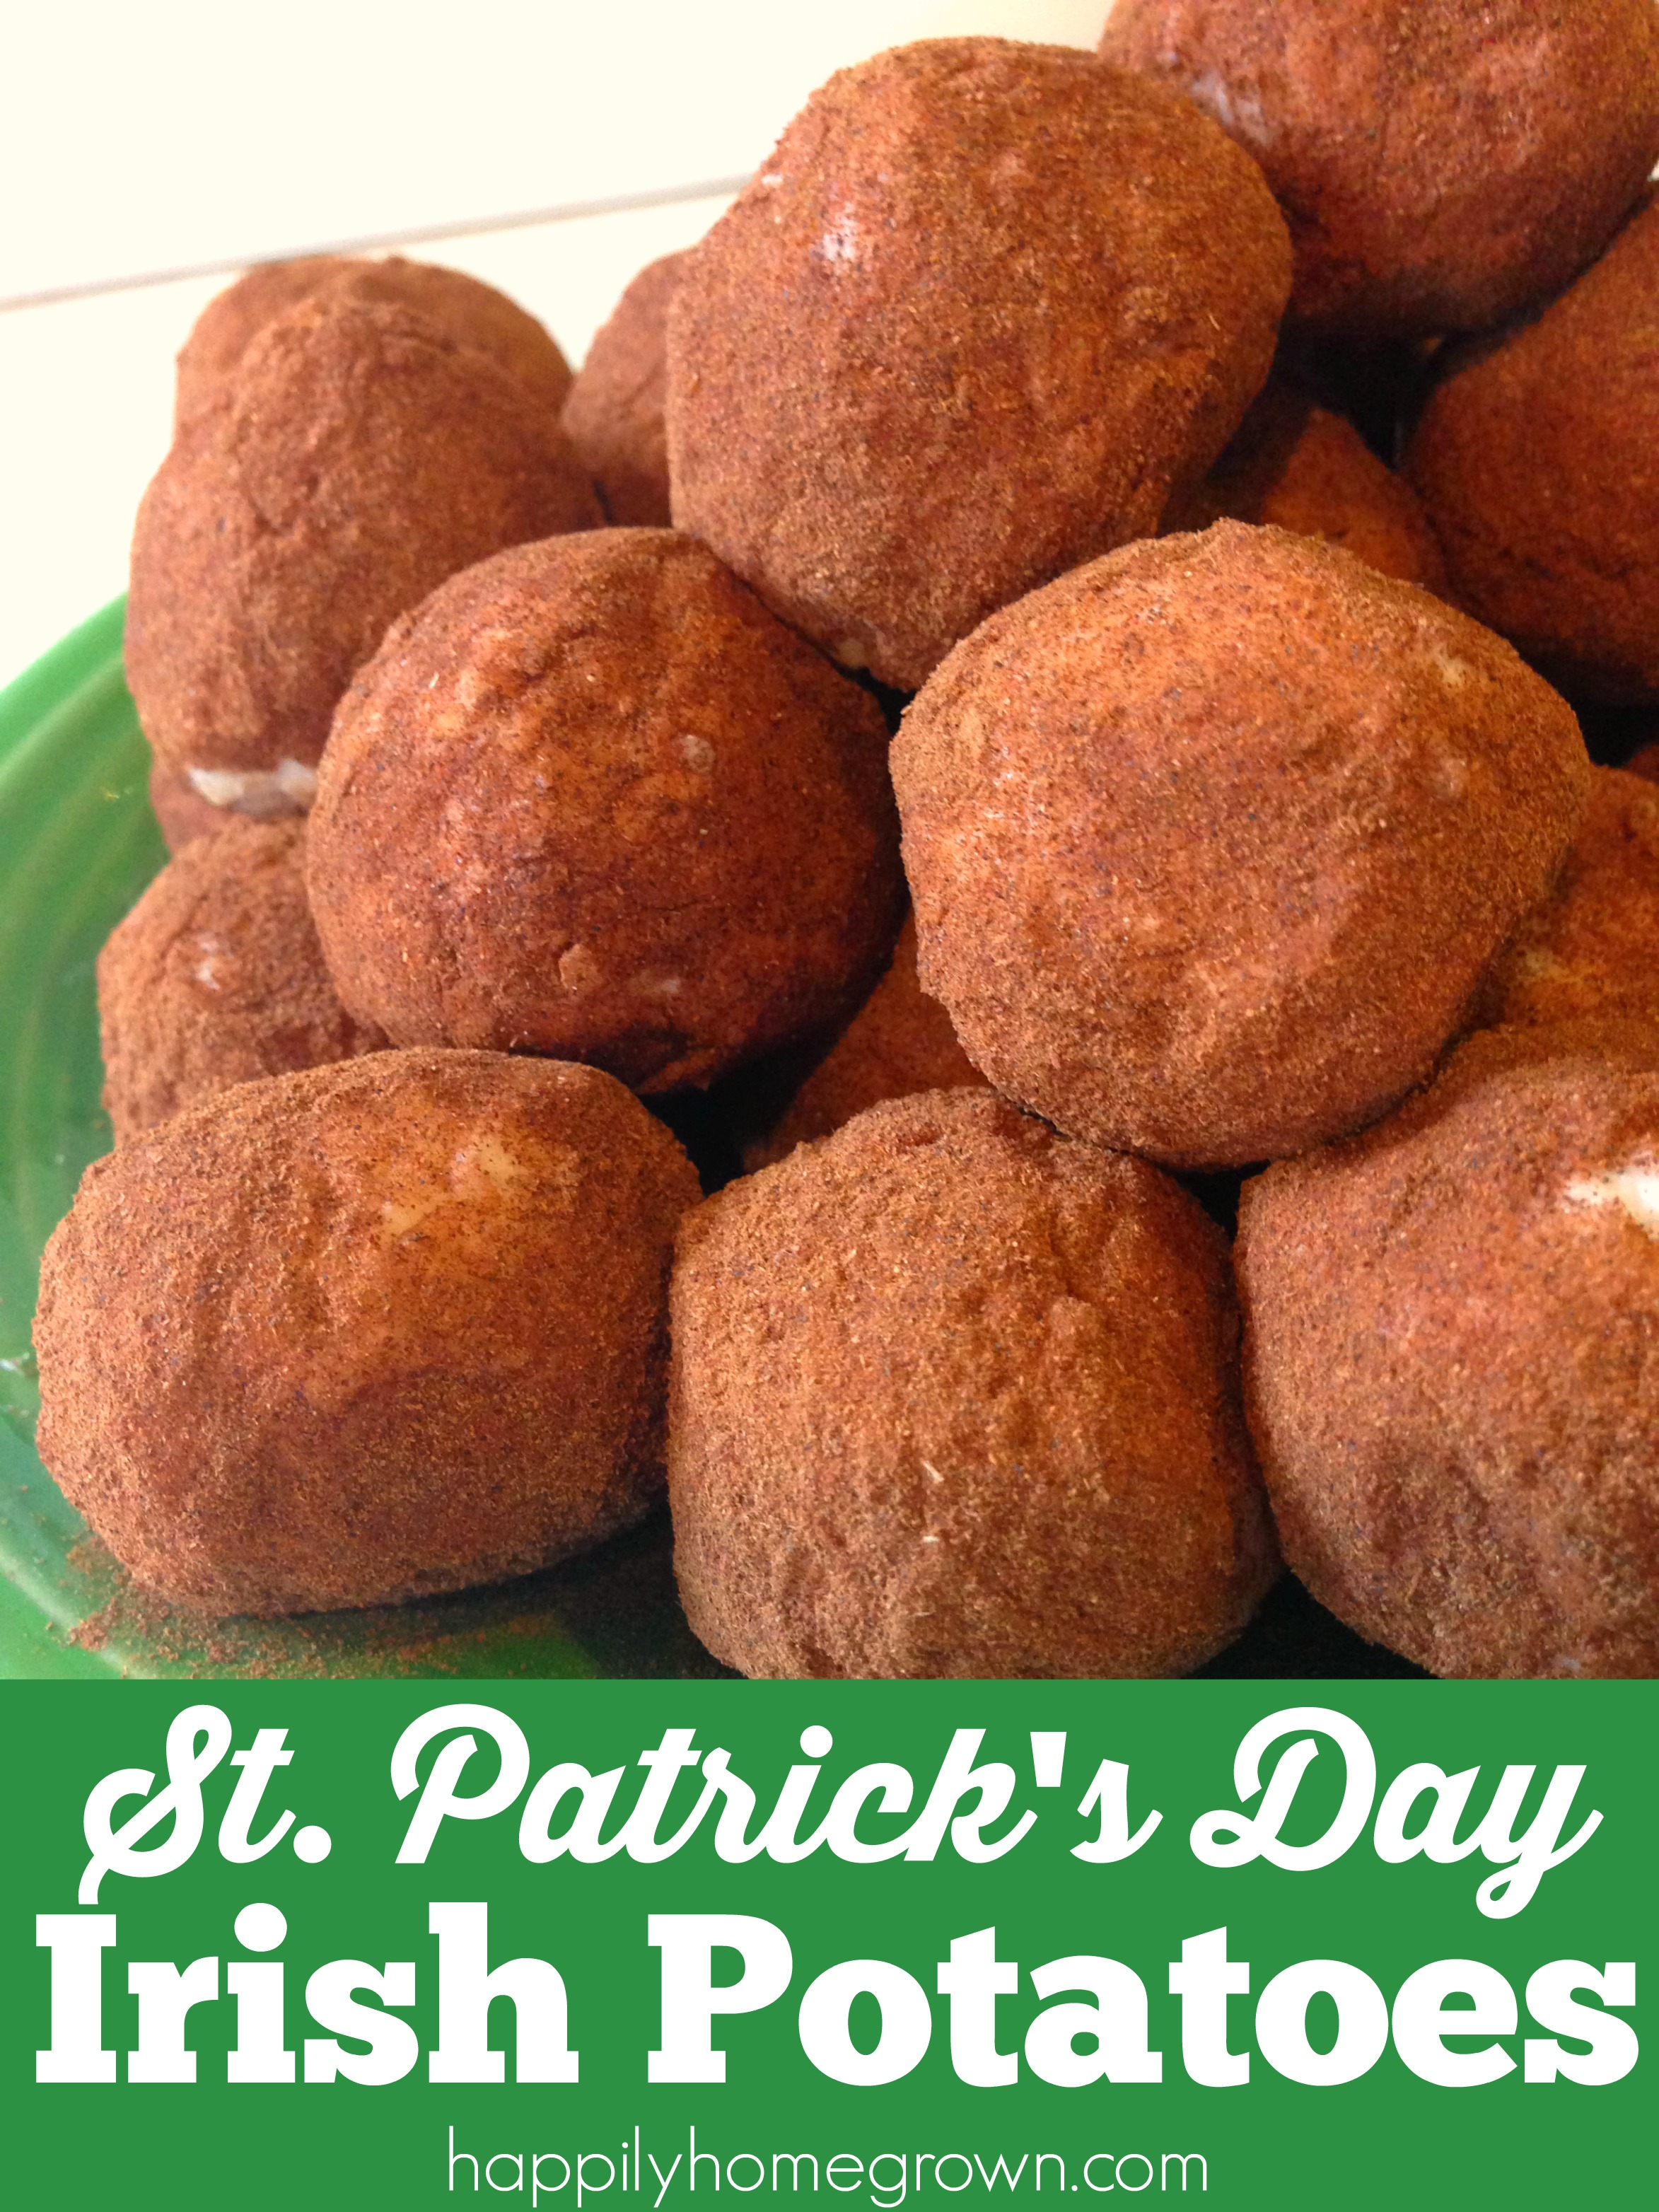 Irish Potatoes have very little to actually do with potatoes; potatoes aren't even an ingredient! However, these bite size confections look like petite russet potatoes.